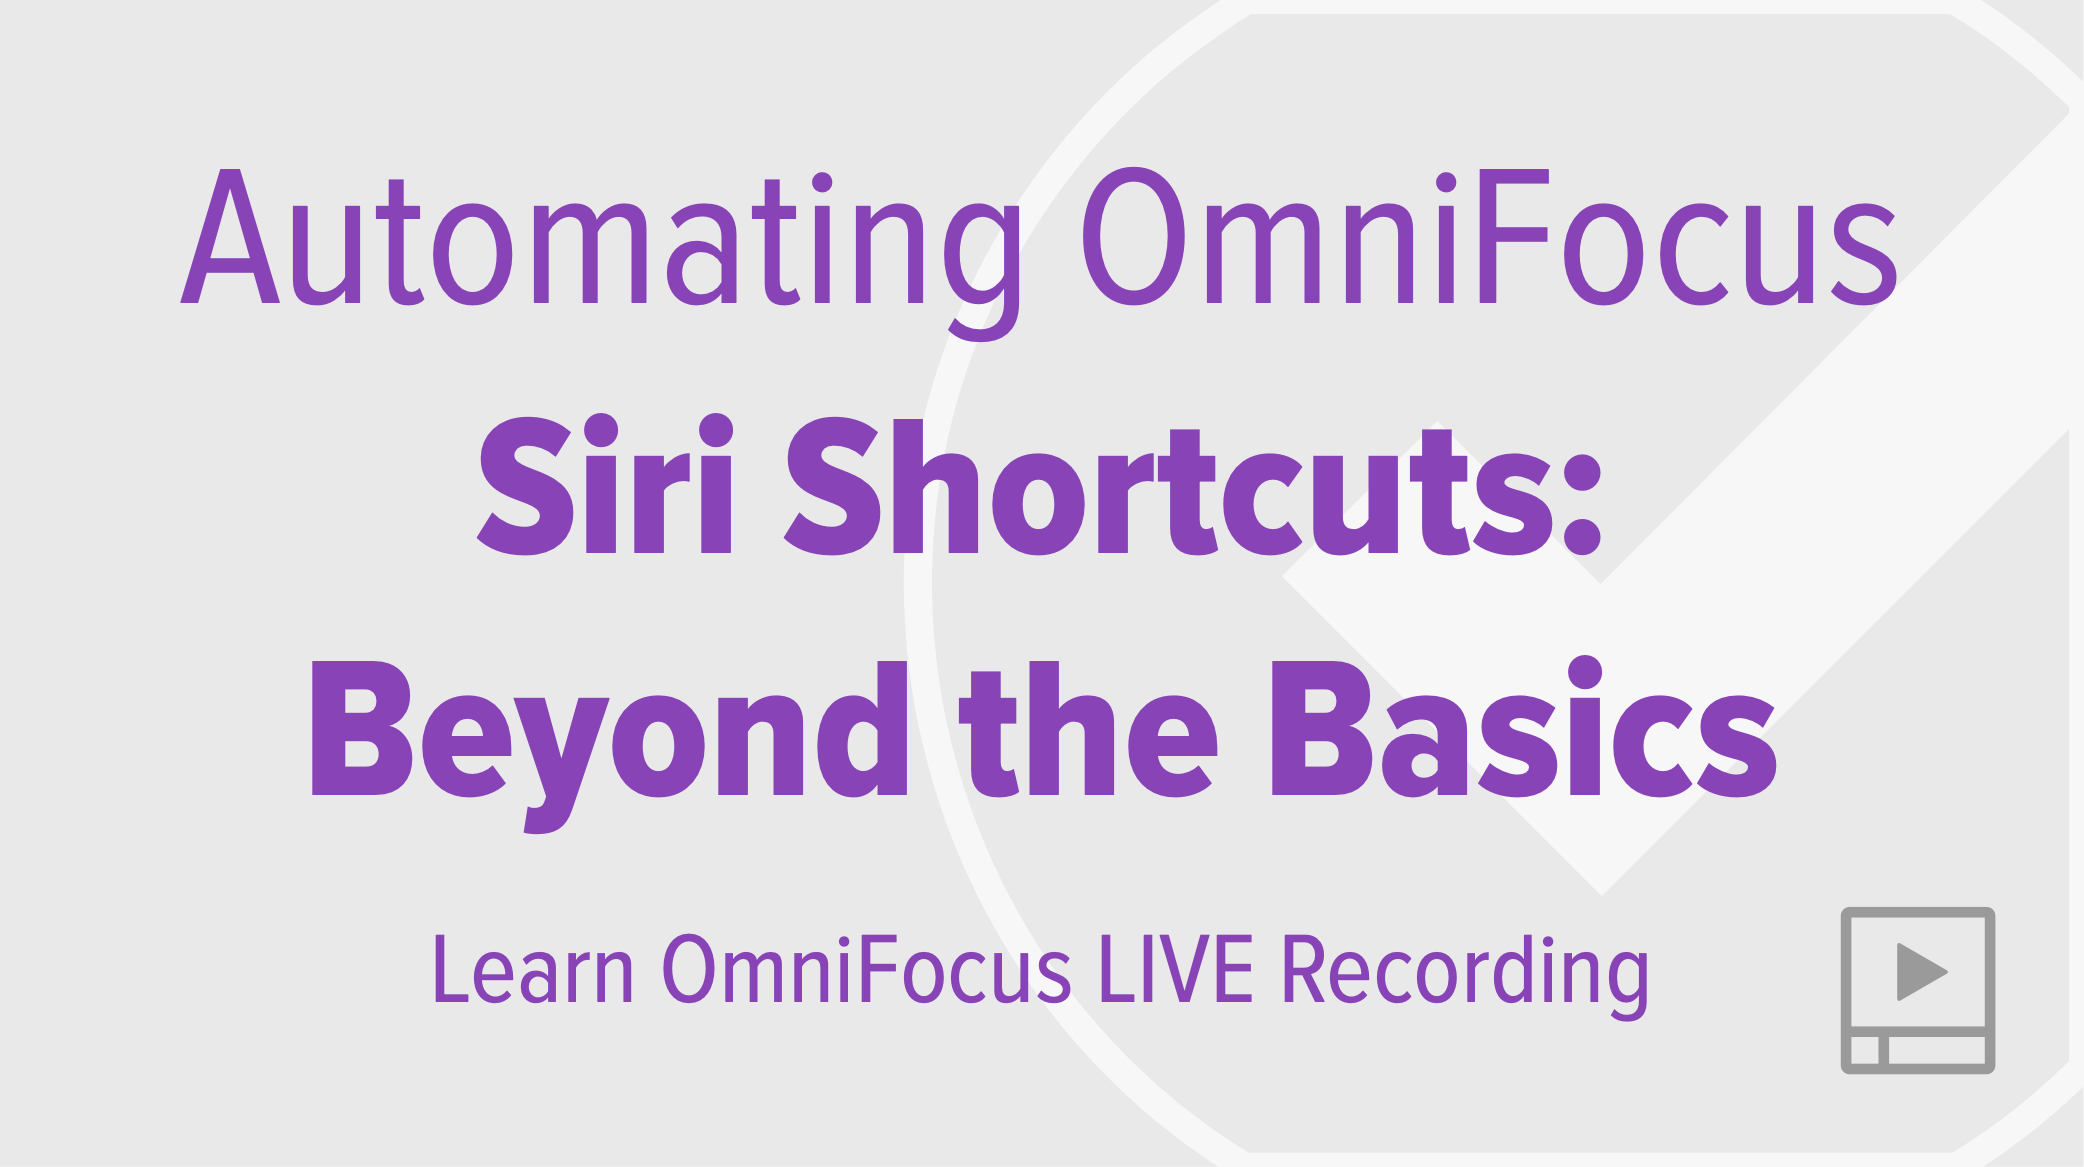 Automating OmniFocus 3 Using Siri Shortcuts - Beyond the Basics